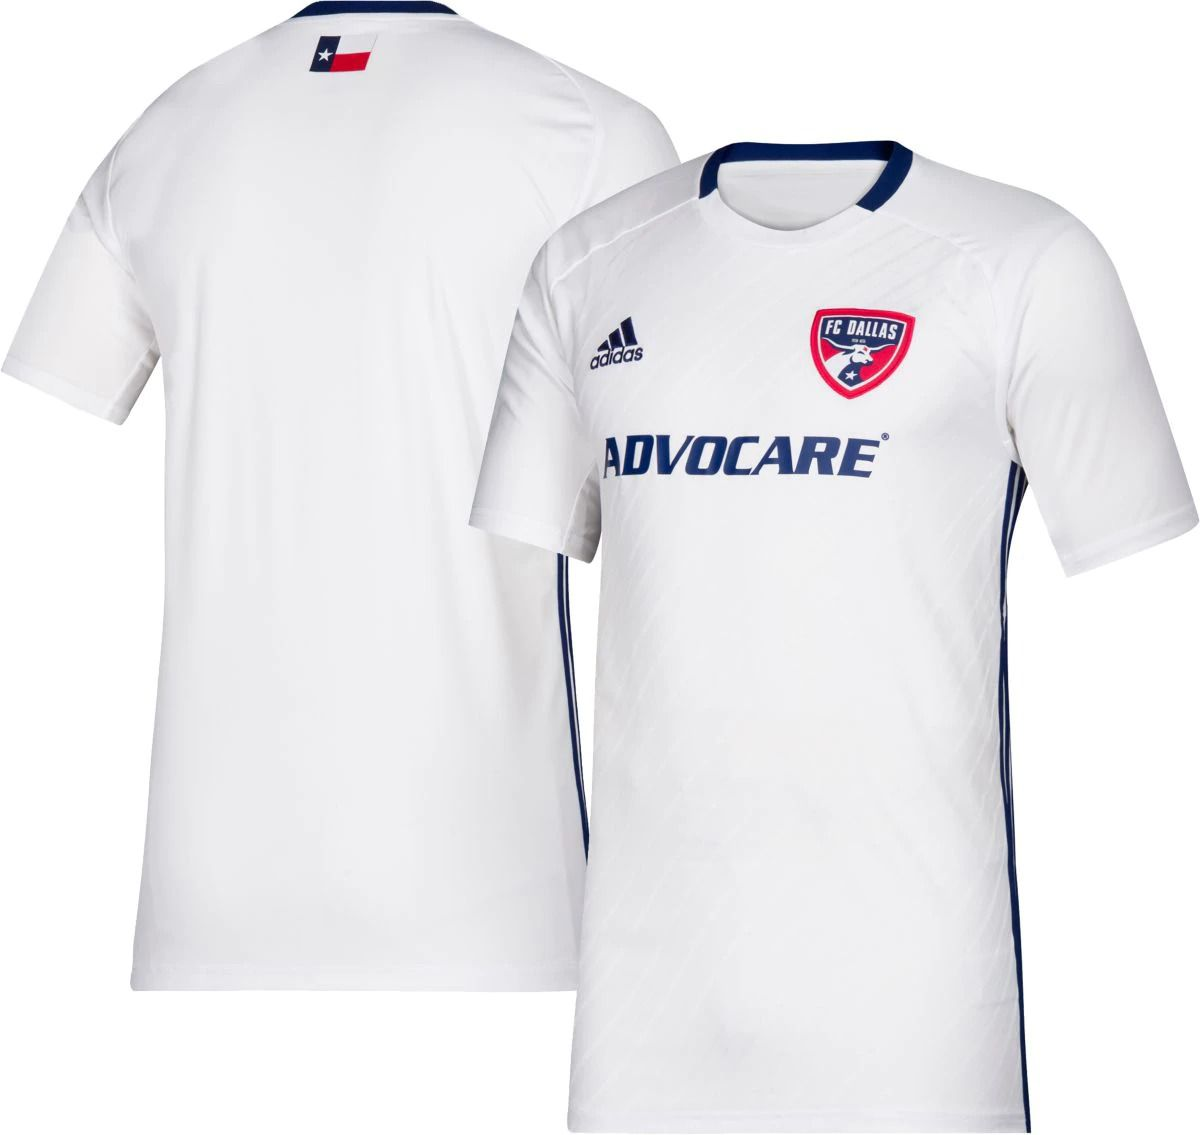 buy online 7ac6b 803da MLS Uniforms 2019: The new primary and secondary kits for ...